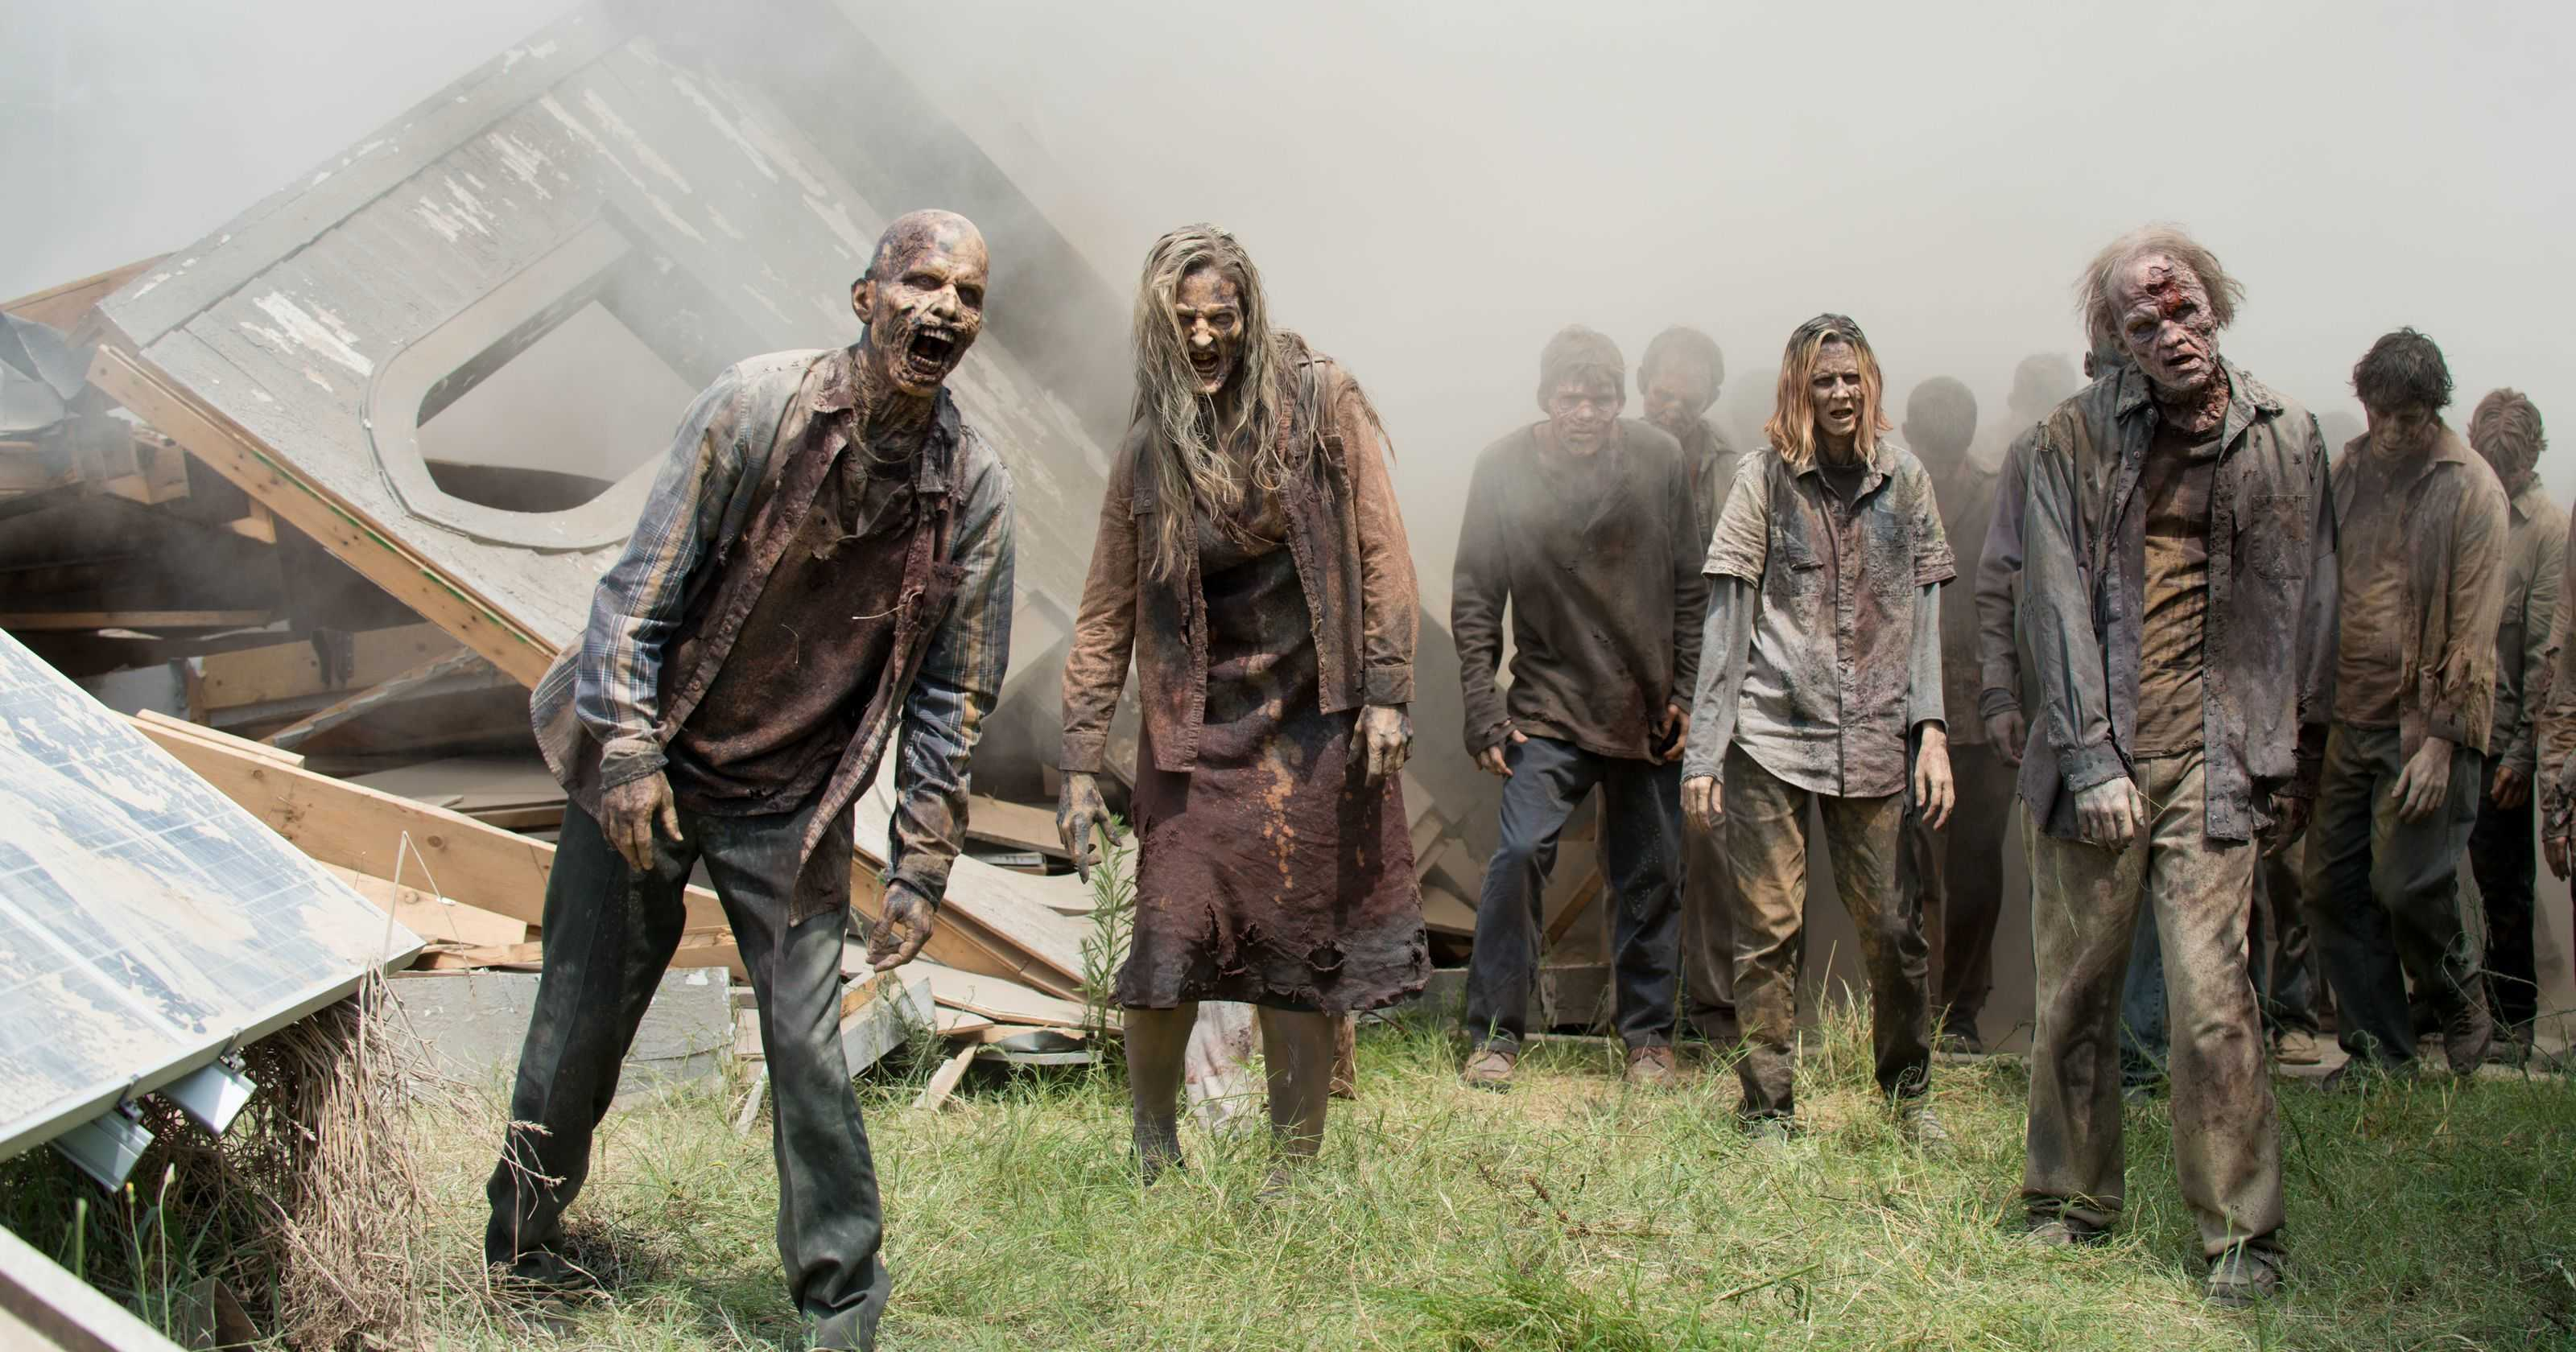 'Walking Dead' permanent attraction announcement rumored for Universal Studios Hollywood